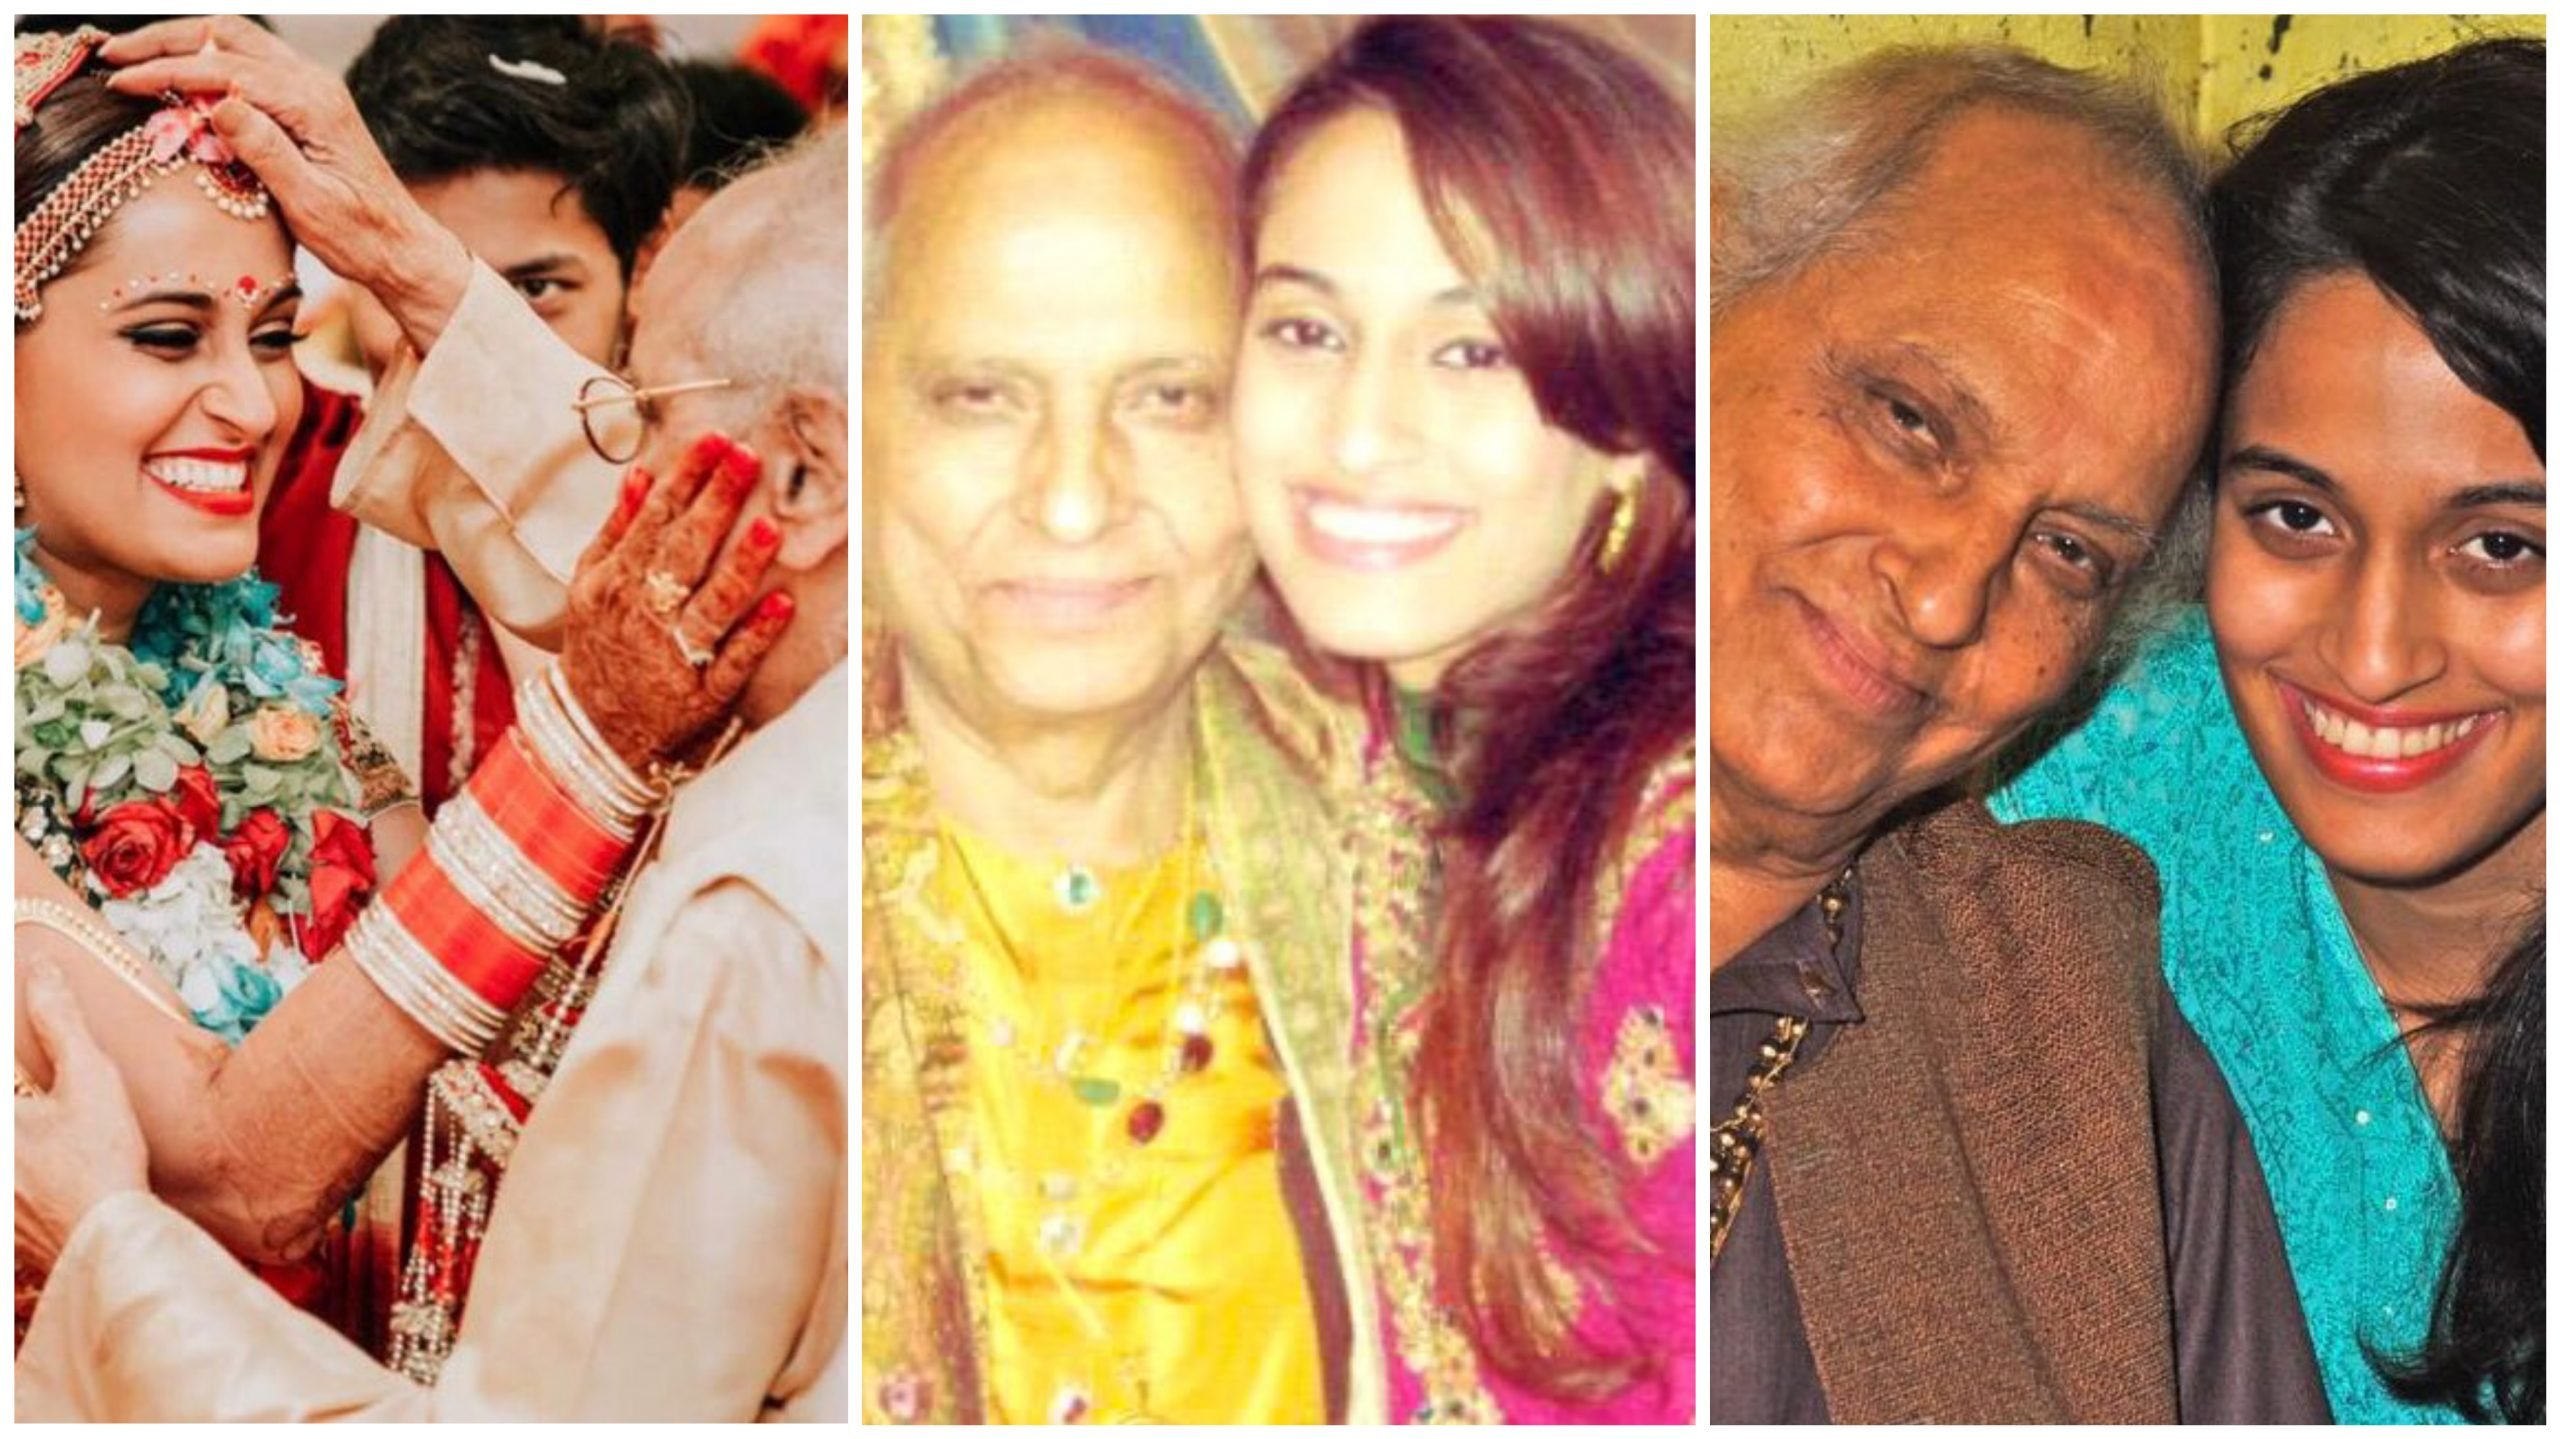 Pandit Jasraj's granddaughter and singer Shweta Pandit : Good bye my precious dadu. So many insanely beautiful memories you have given me.. but i have no words now...